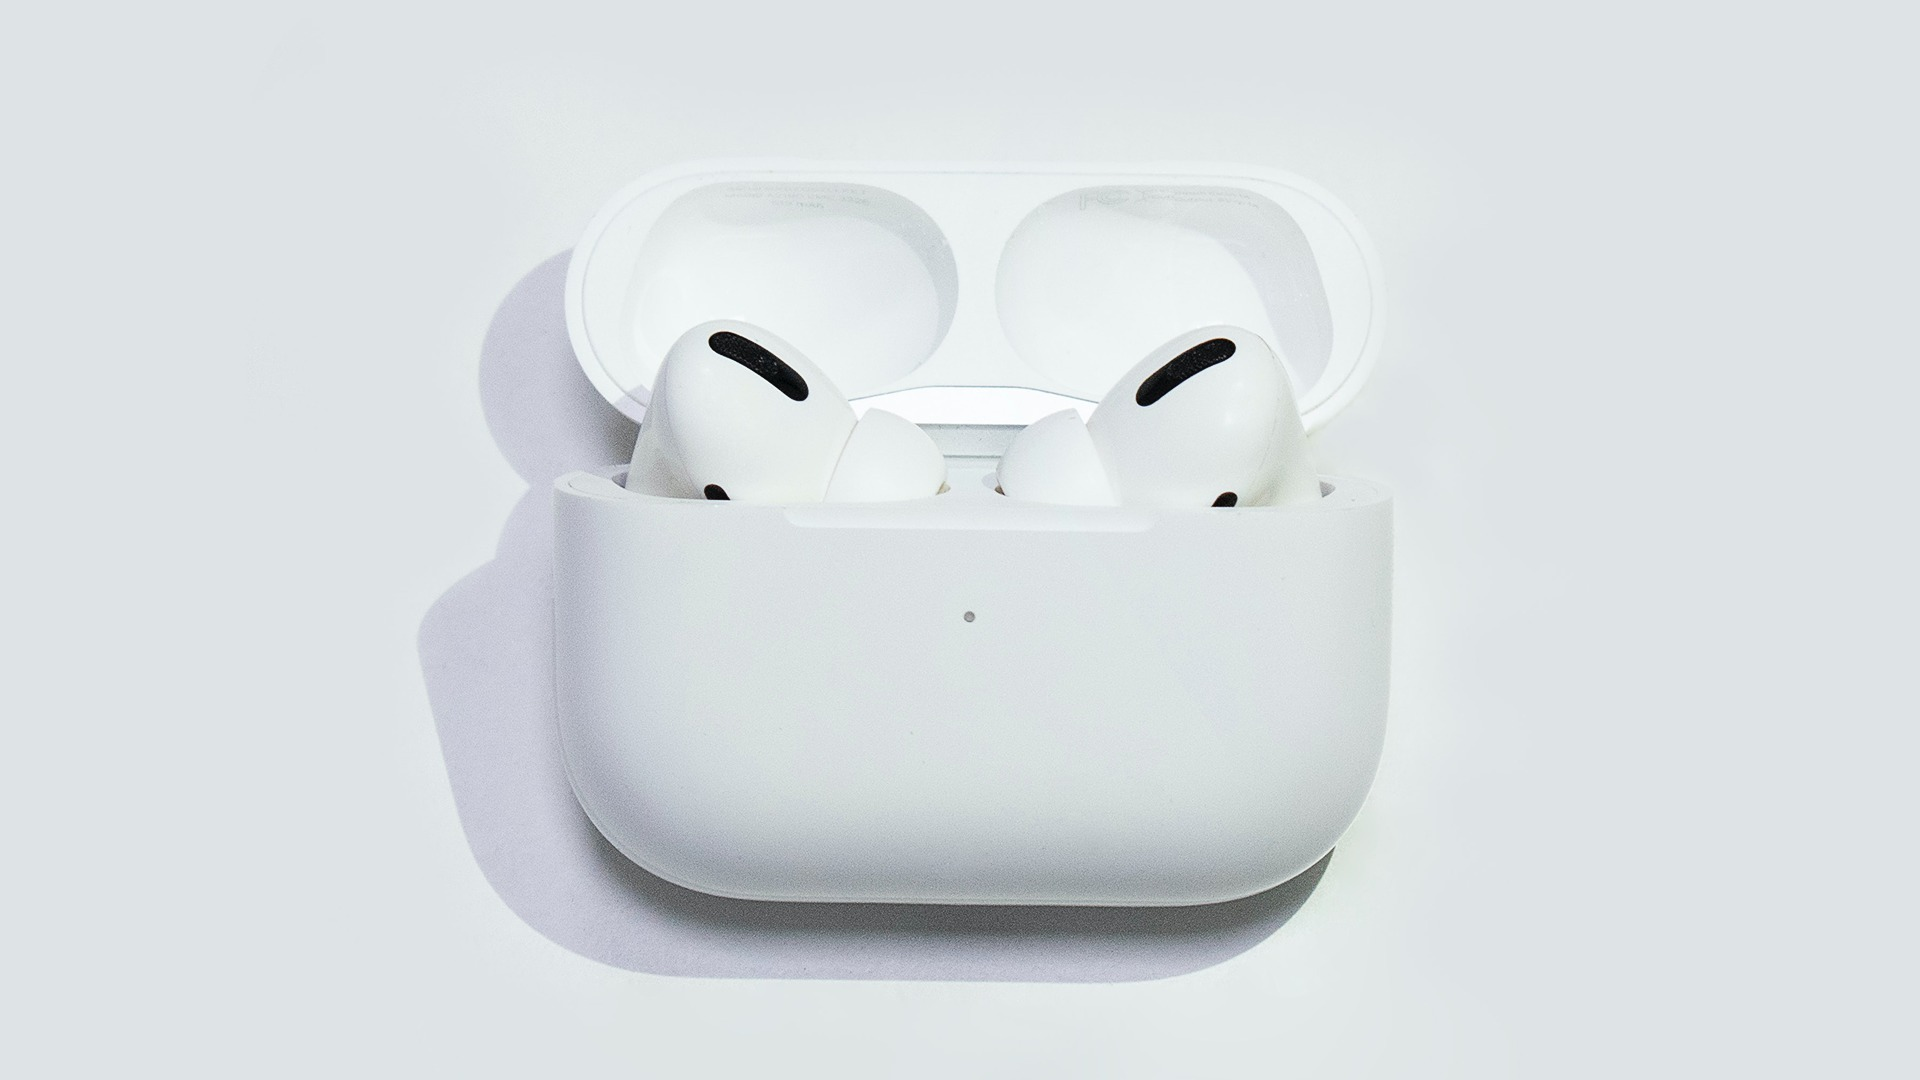 nova generacia apple airpods